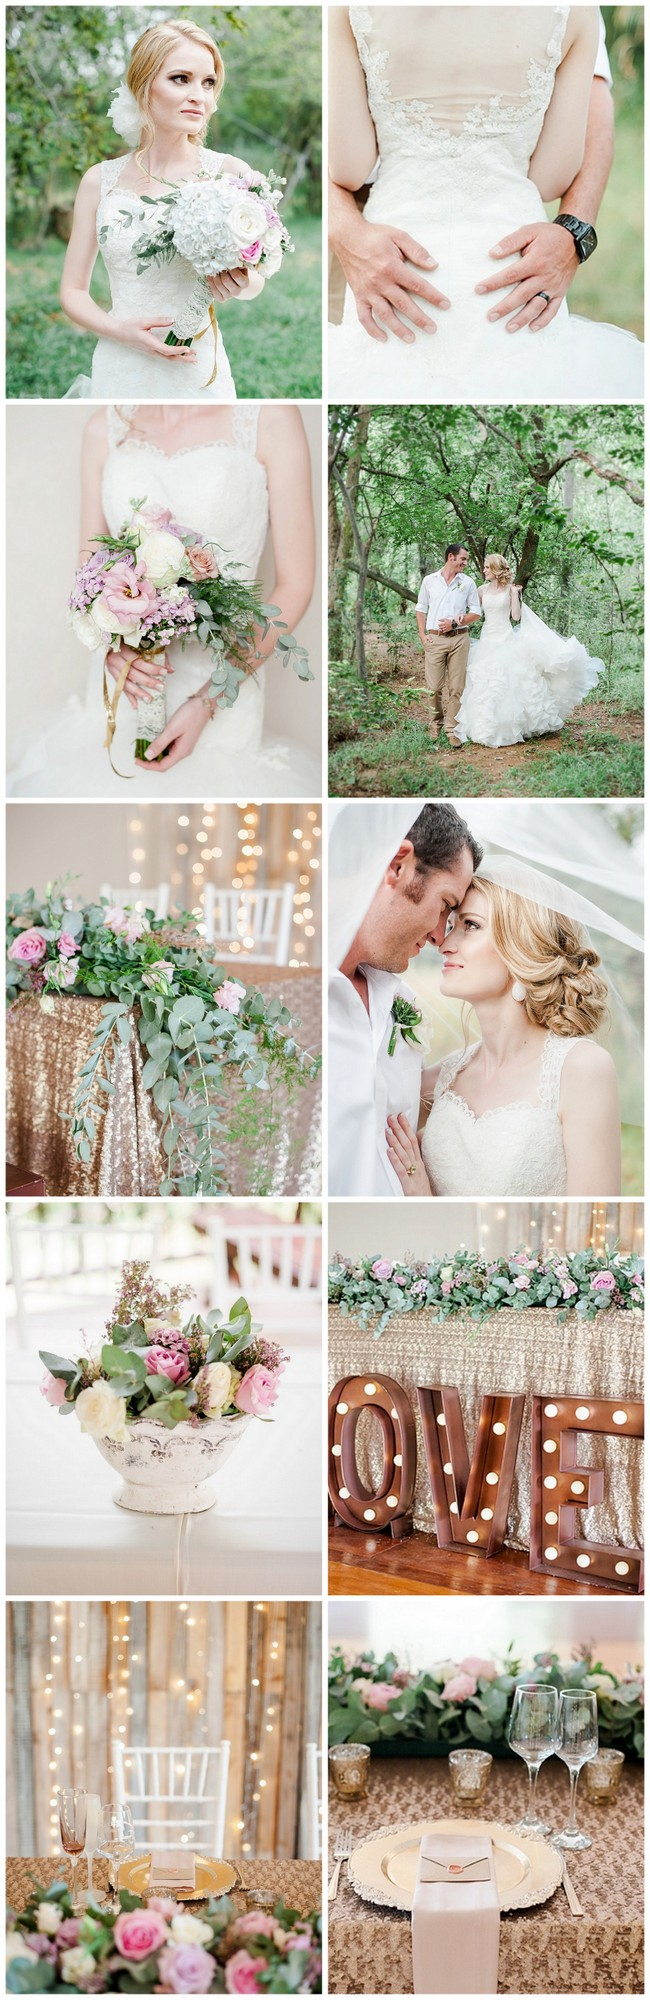 Totally Dreamy Pastel Gold Pretoria Wedding http://www.confettidaydreams.com/pastel-gold-pretoria-wedding/